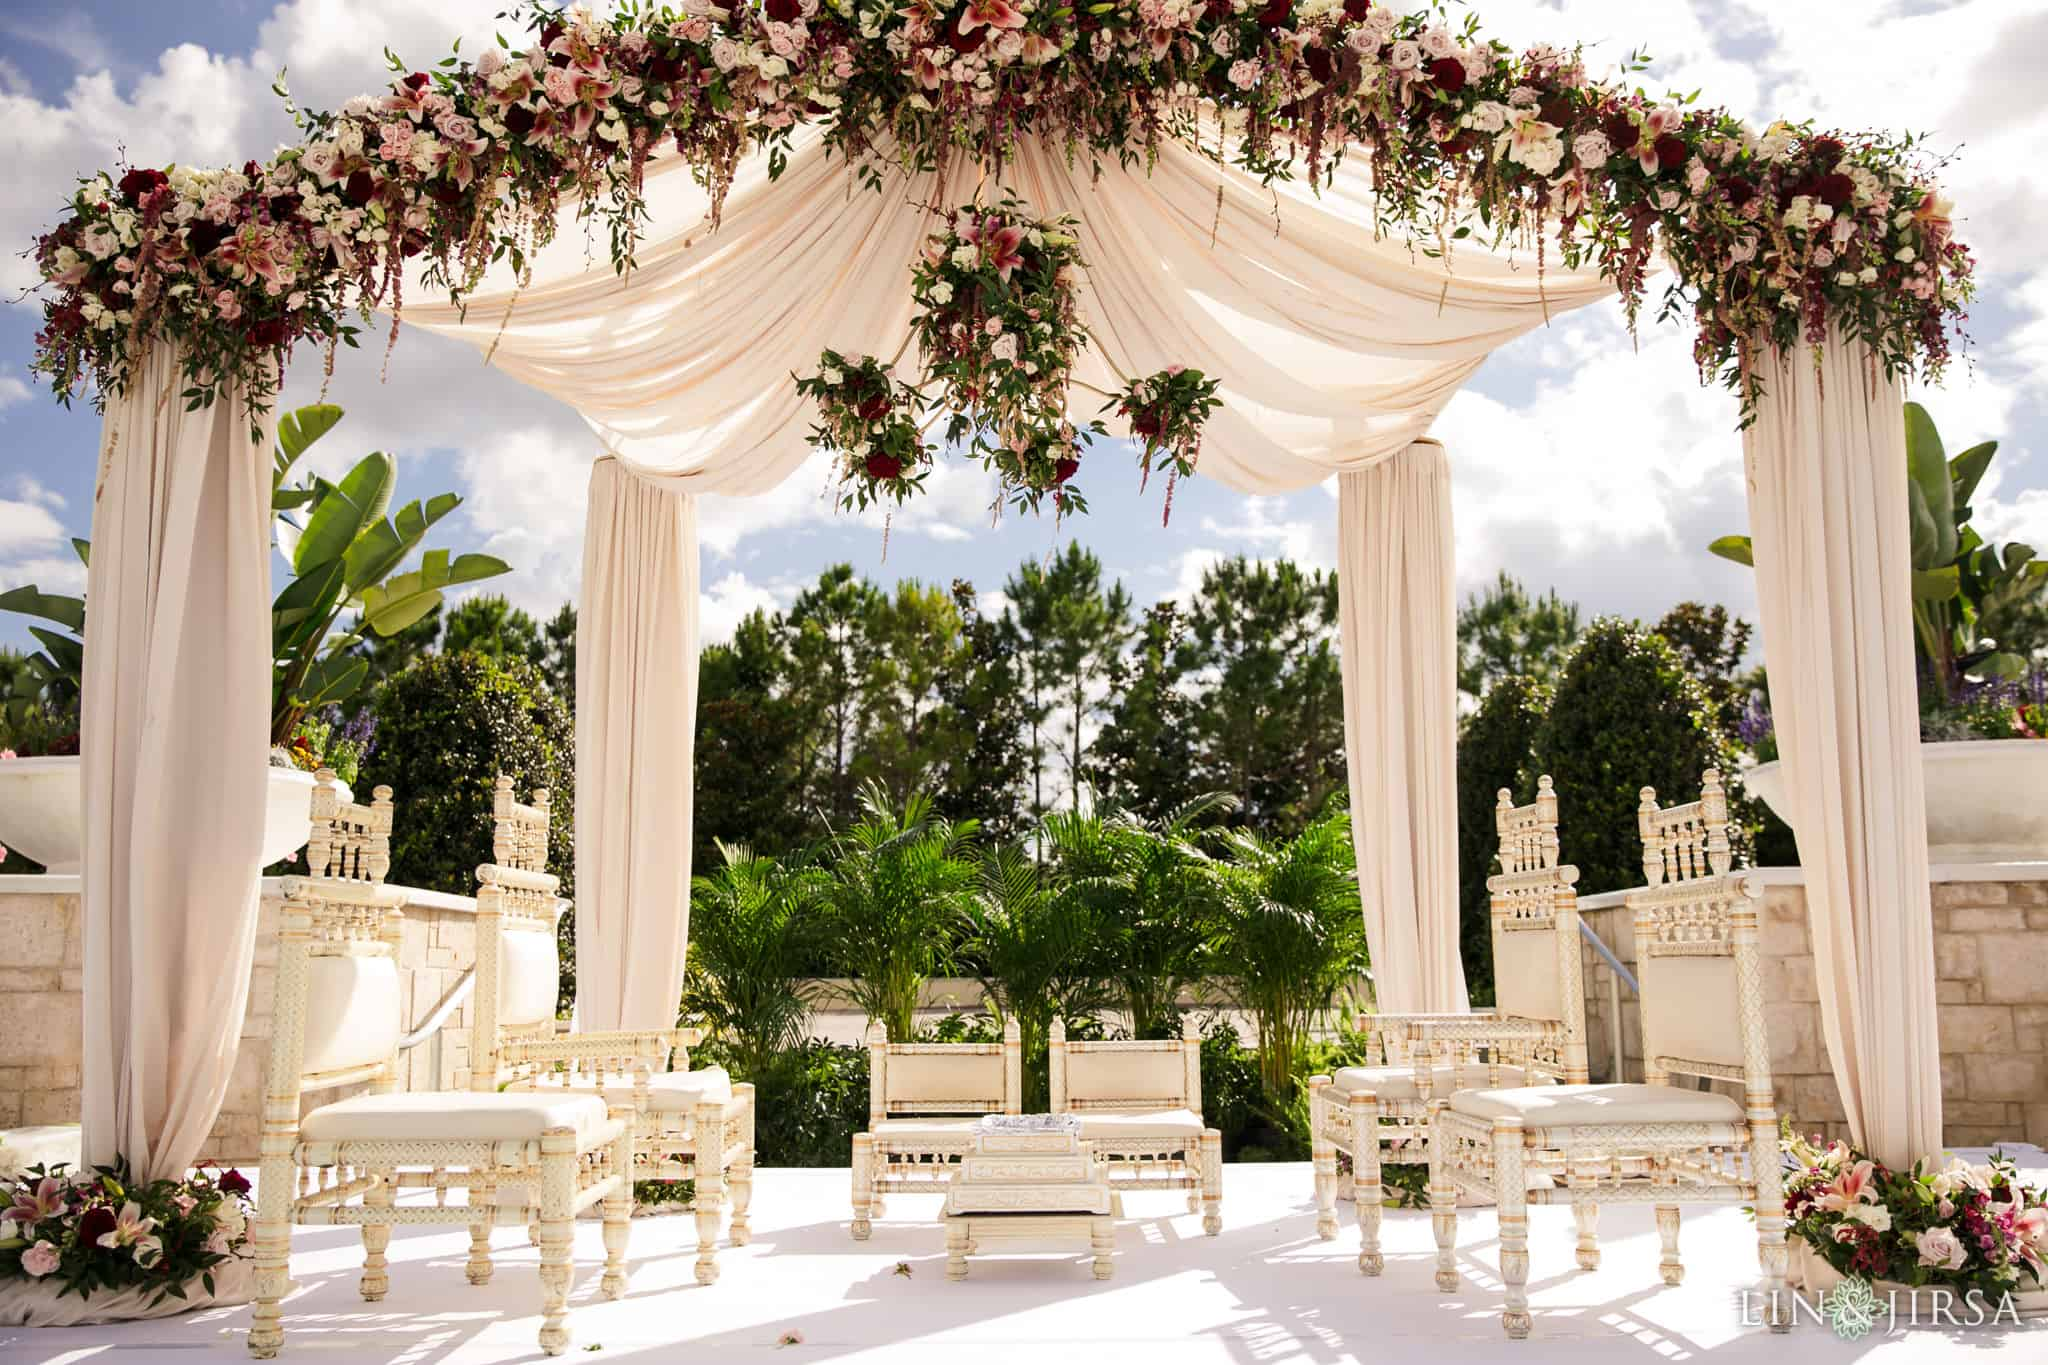 Wedding Venues Orlando.Orlando Wedding Venues The Most Beautiful Places To Tie